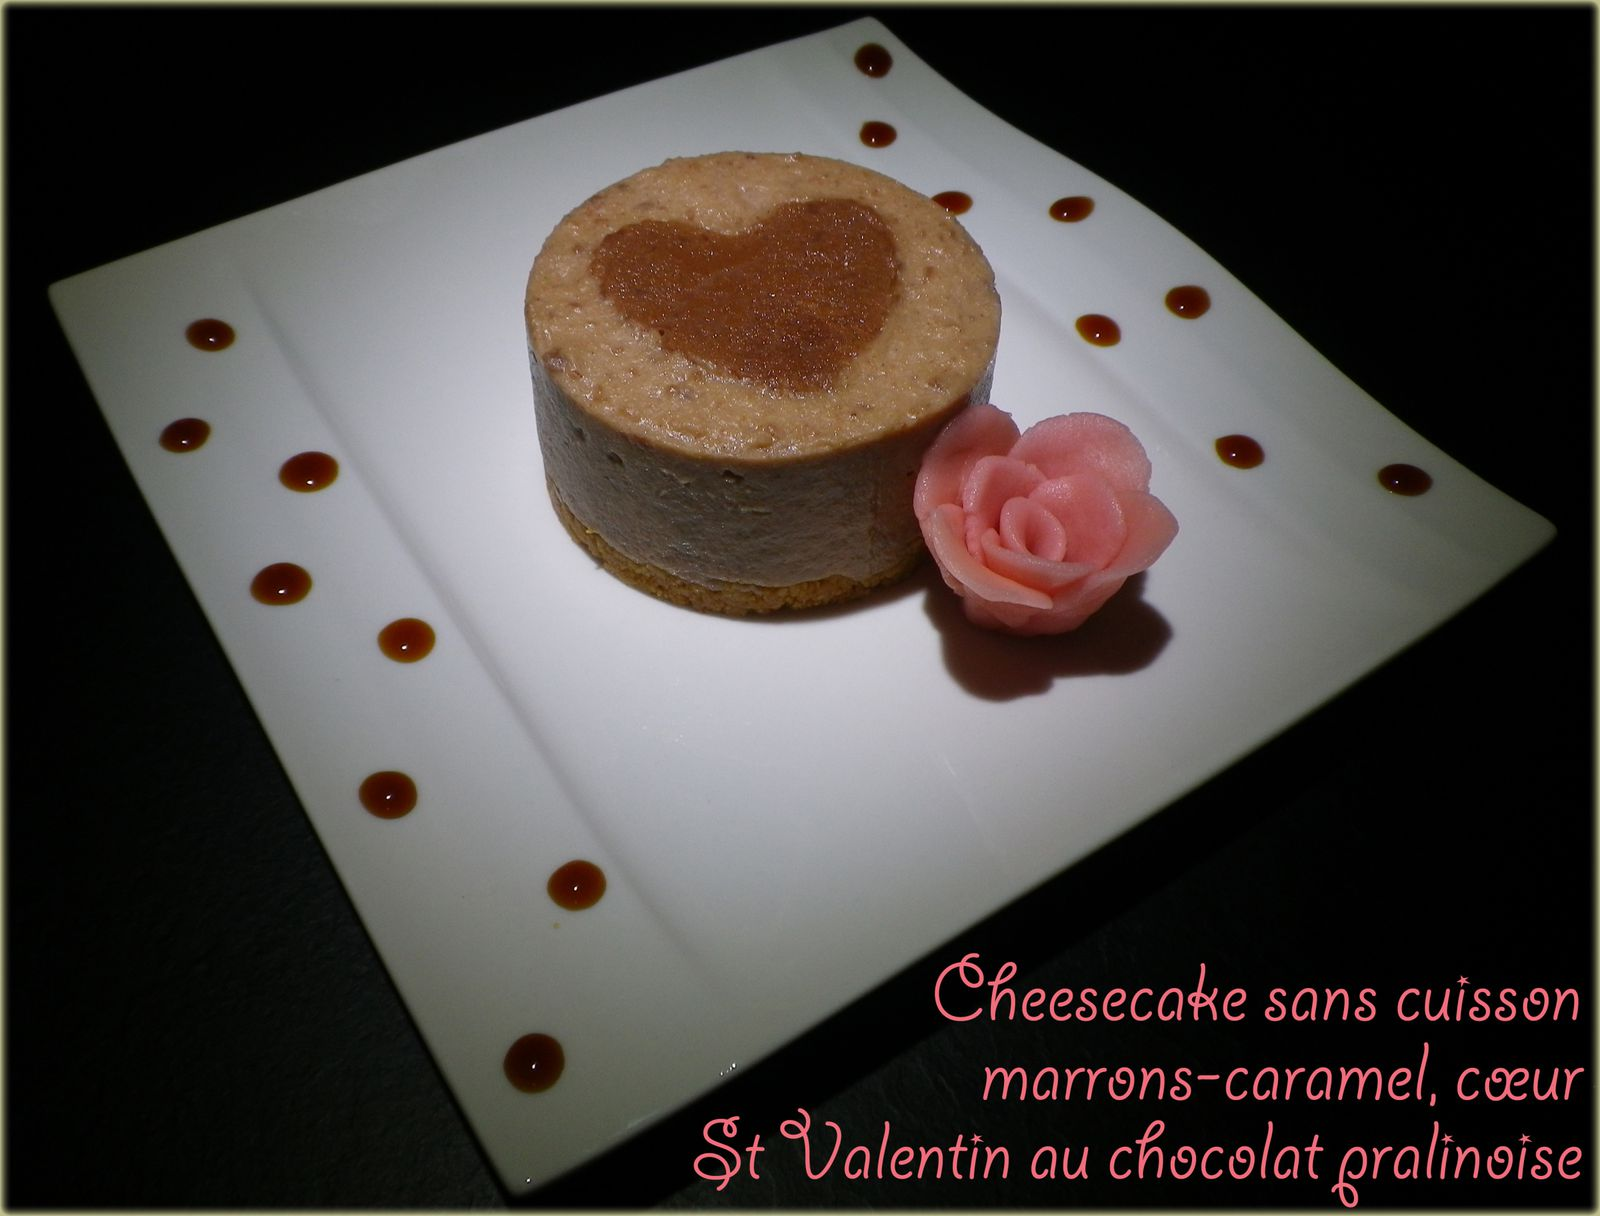 cheesecake sans cuisson marrons caramel c ur st valentin. Black Bedroom Furniture Sets. Home Design Ideas